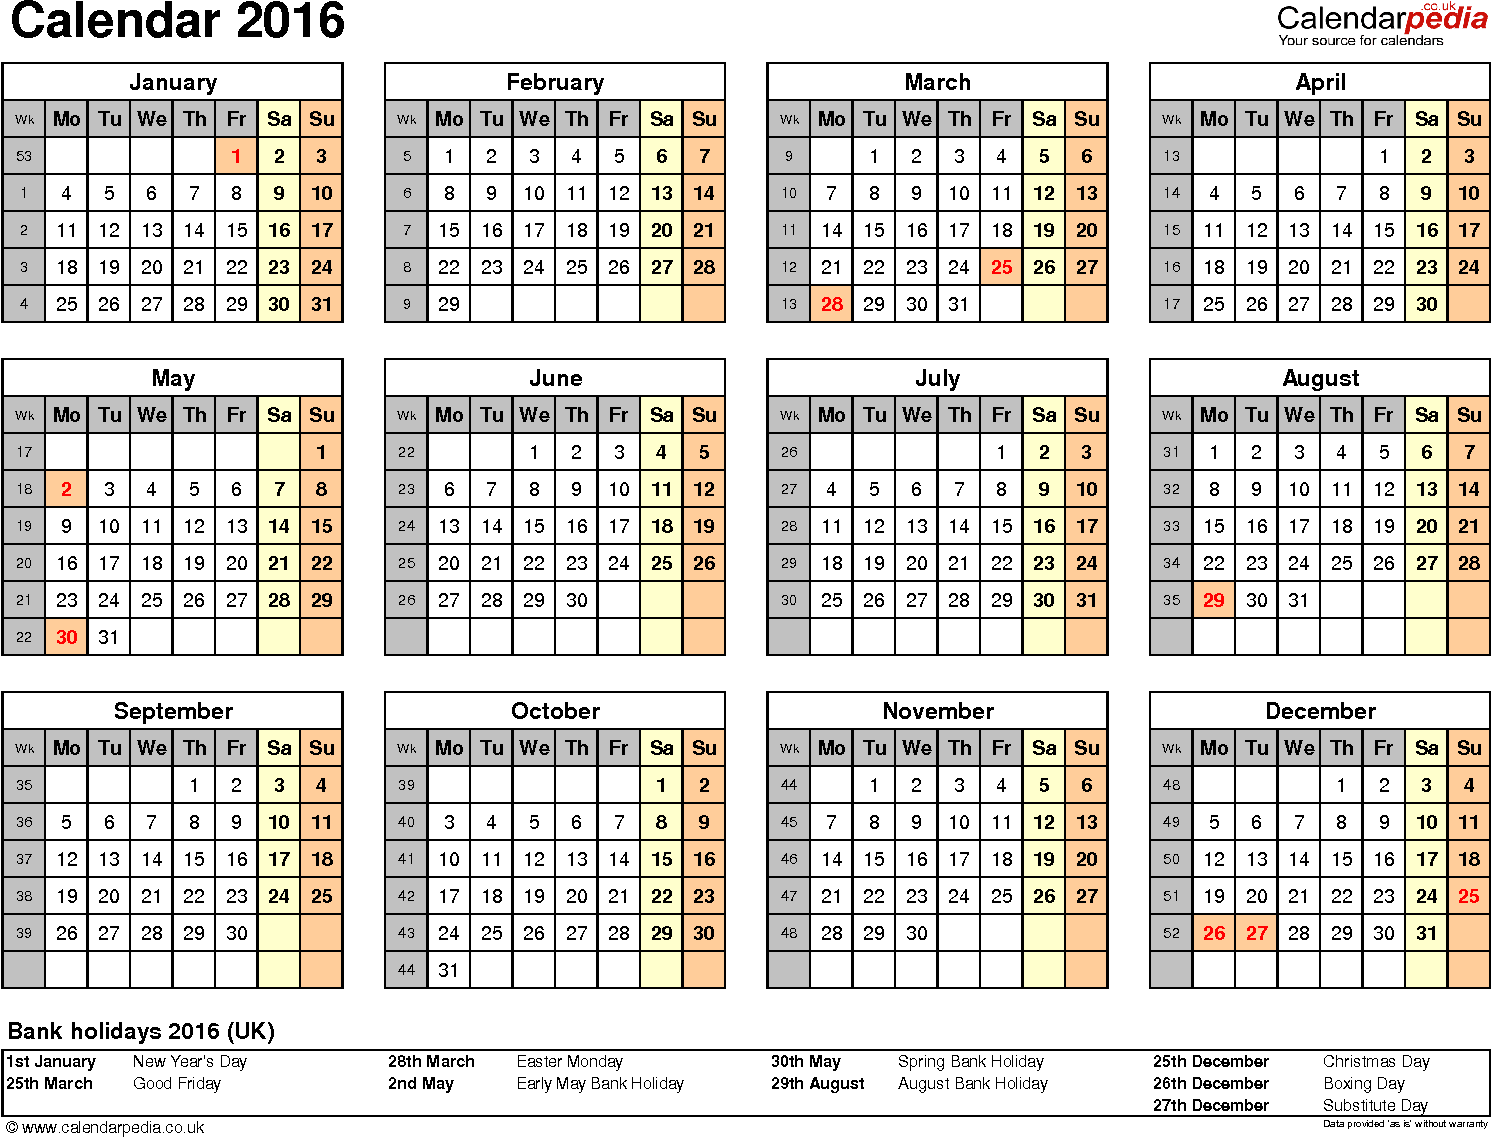 Excel Calendar 2016 (UK): 16 printable templates (xlsx, free)